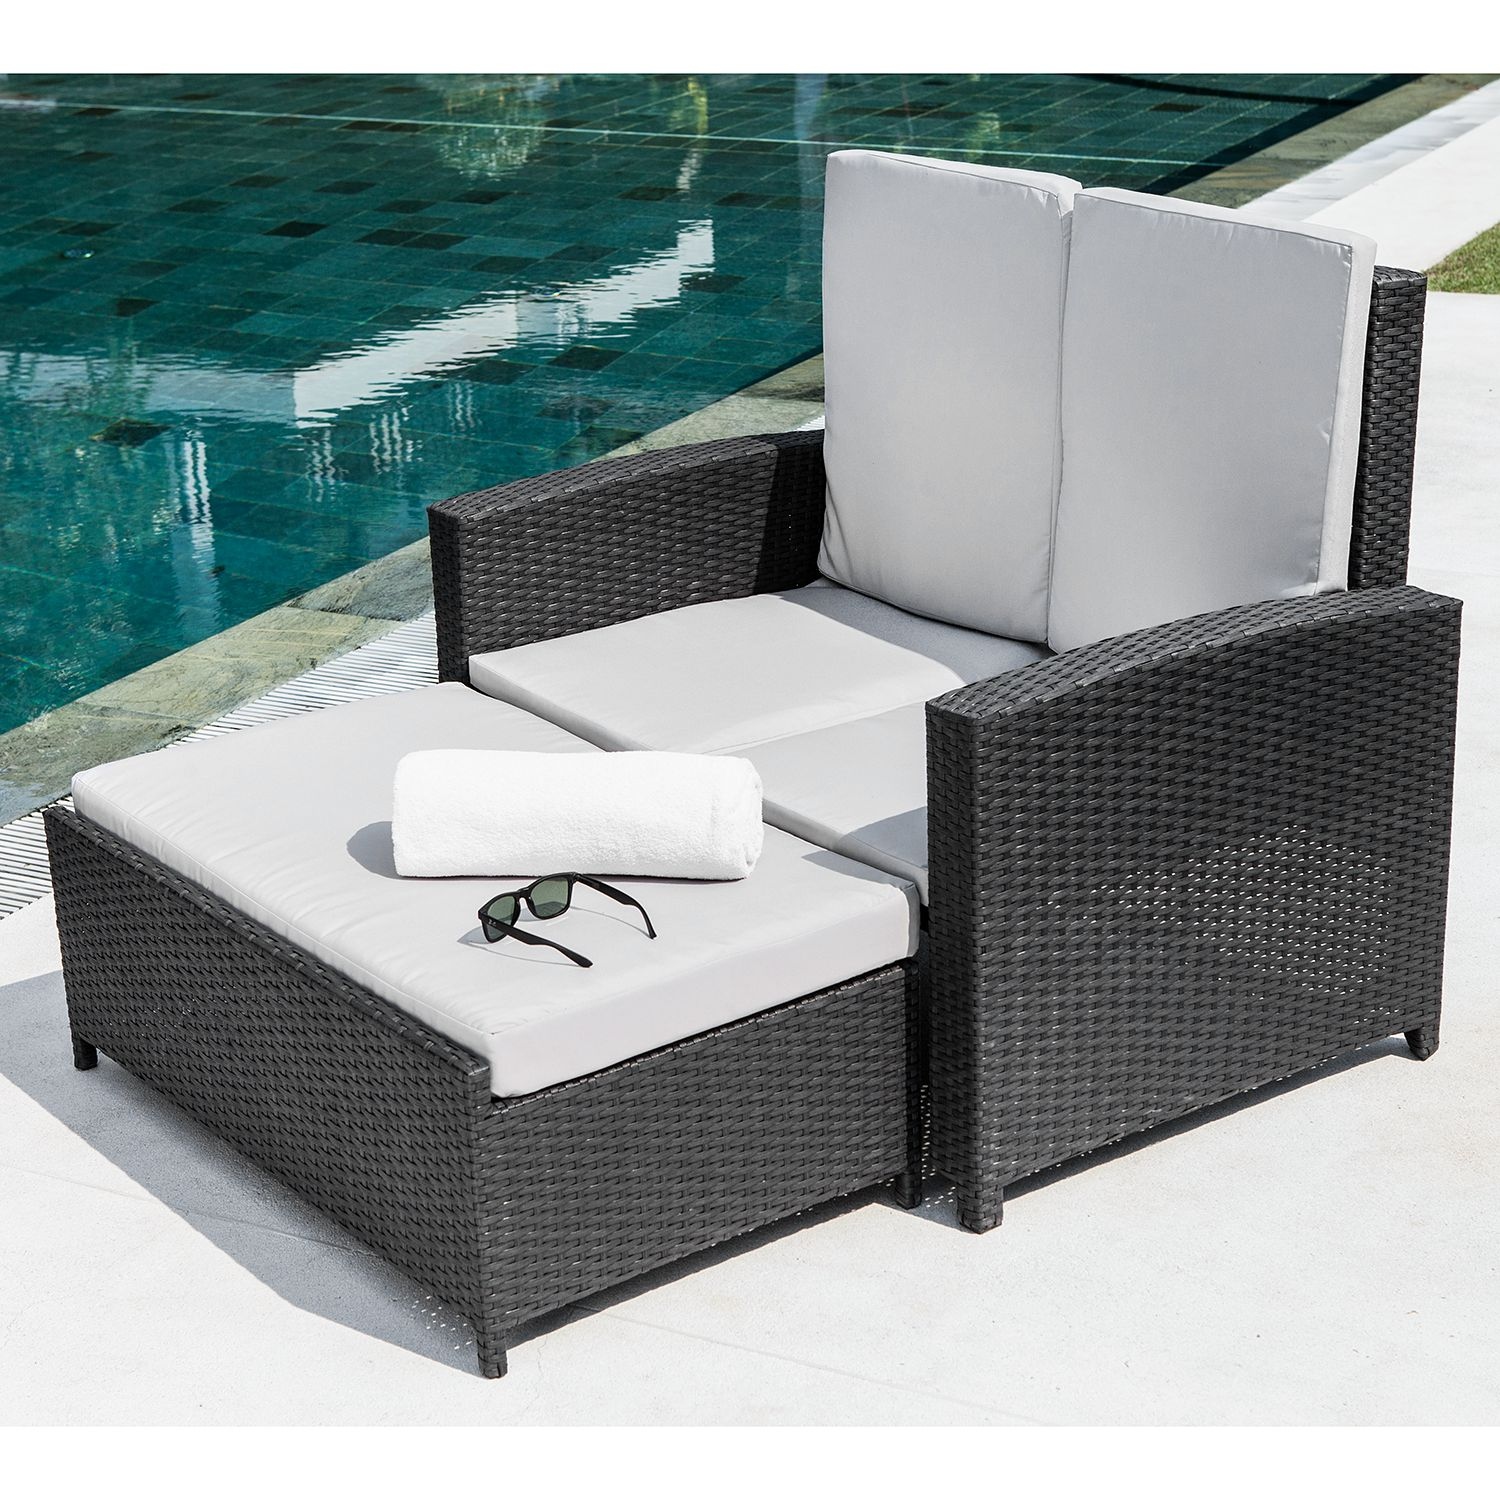 12 sparen gartensofa paradise lounge inkl hocker. Black Bedroom Furniture Sets. Home Design Ideas